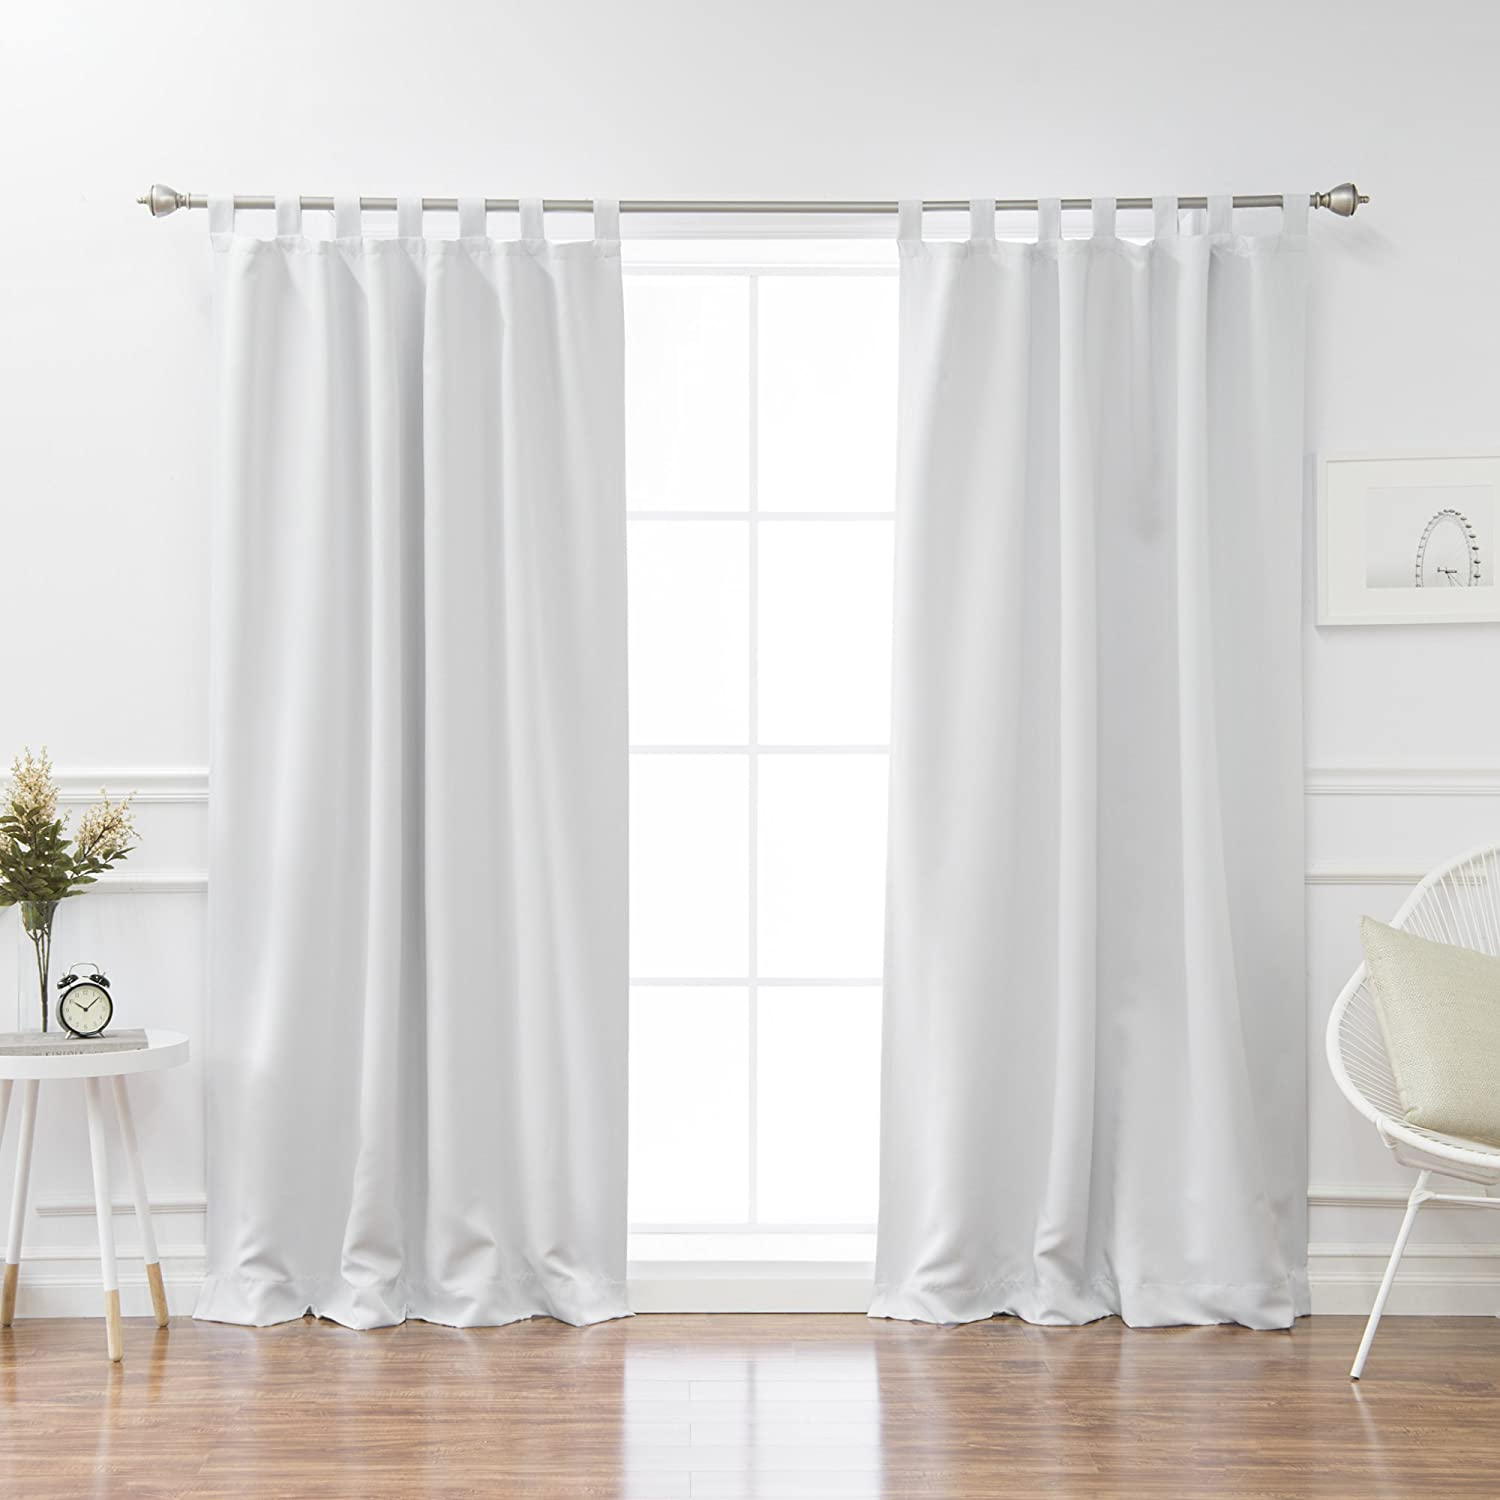 Best Home Fashion Tab Top Thermal Insulated Blackout Curtain Vapor